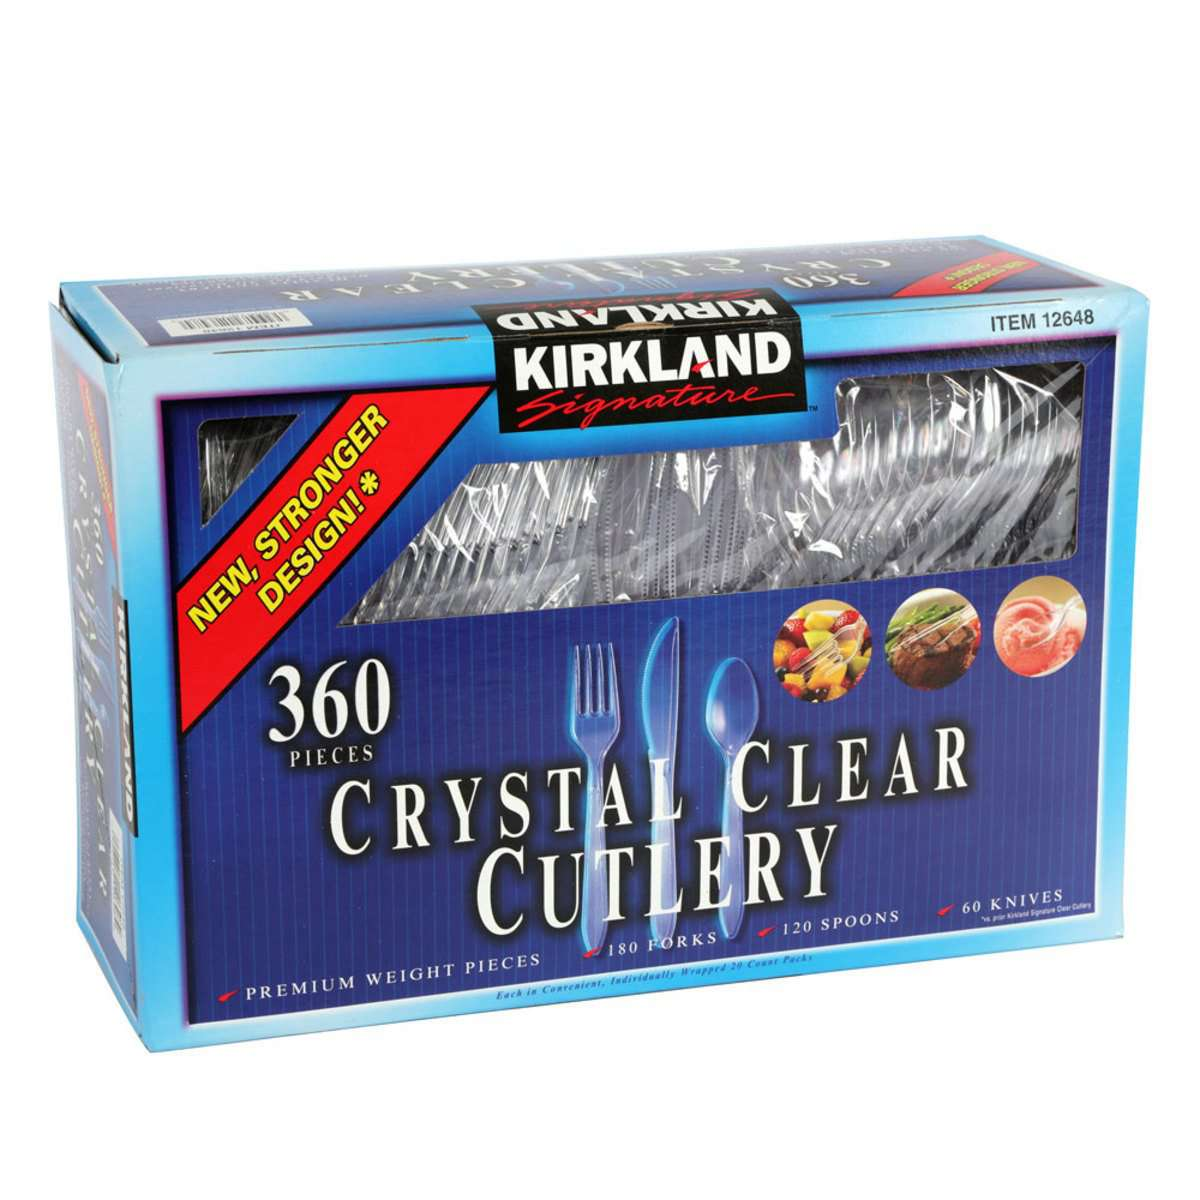 Kirkland Signature Crystal Clear Disposable Cutlery, 360 PiecesKirkland Signature Crystal Clear Disposable Cutlery, 360 Pieces